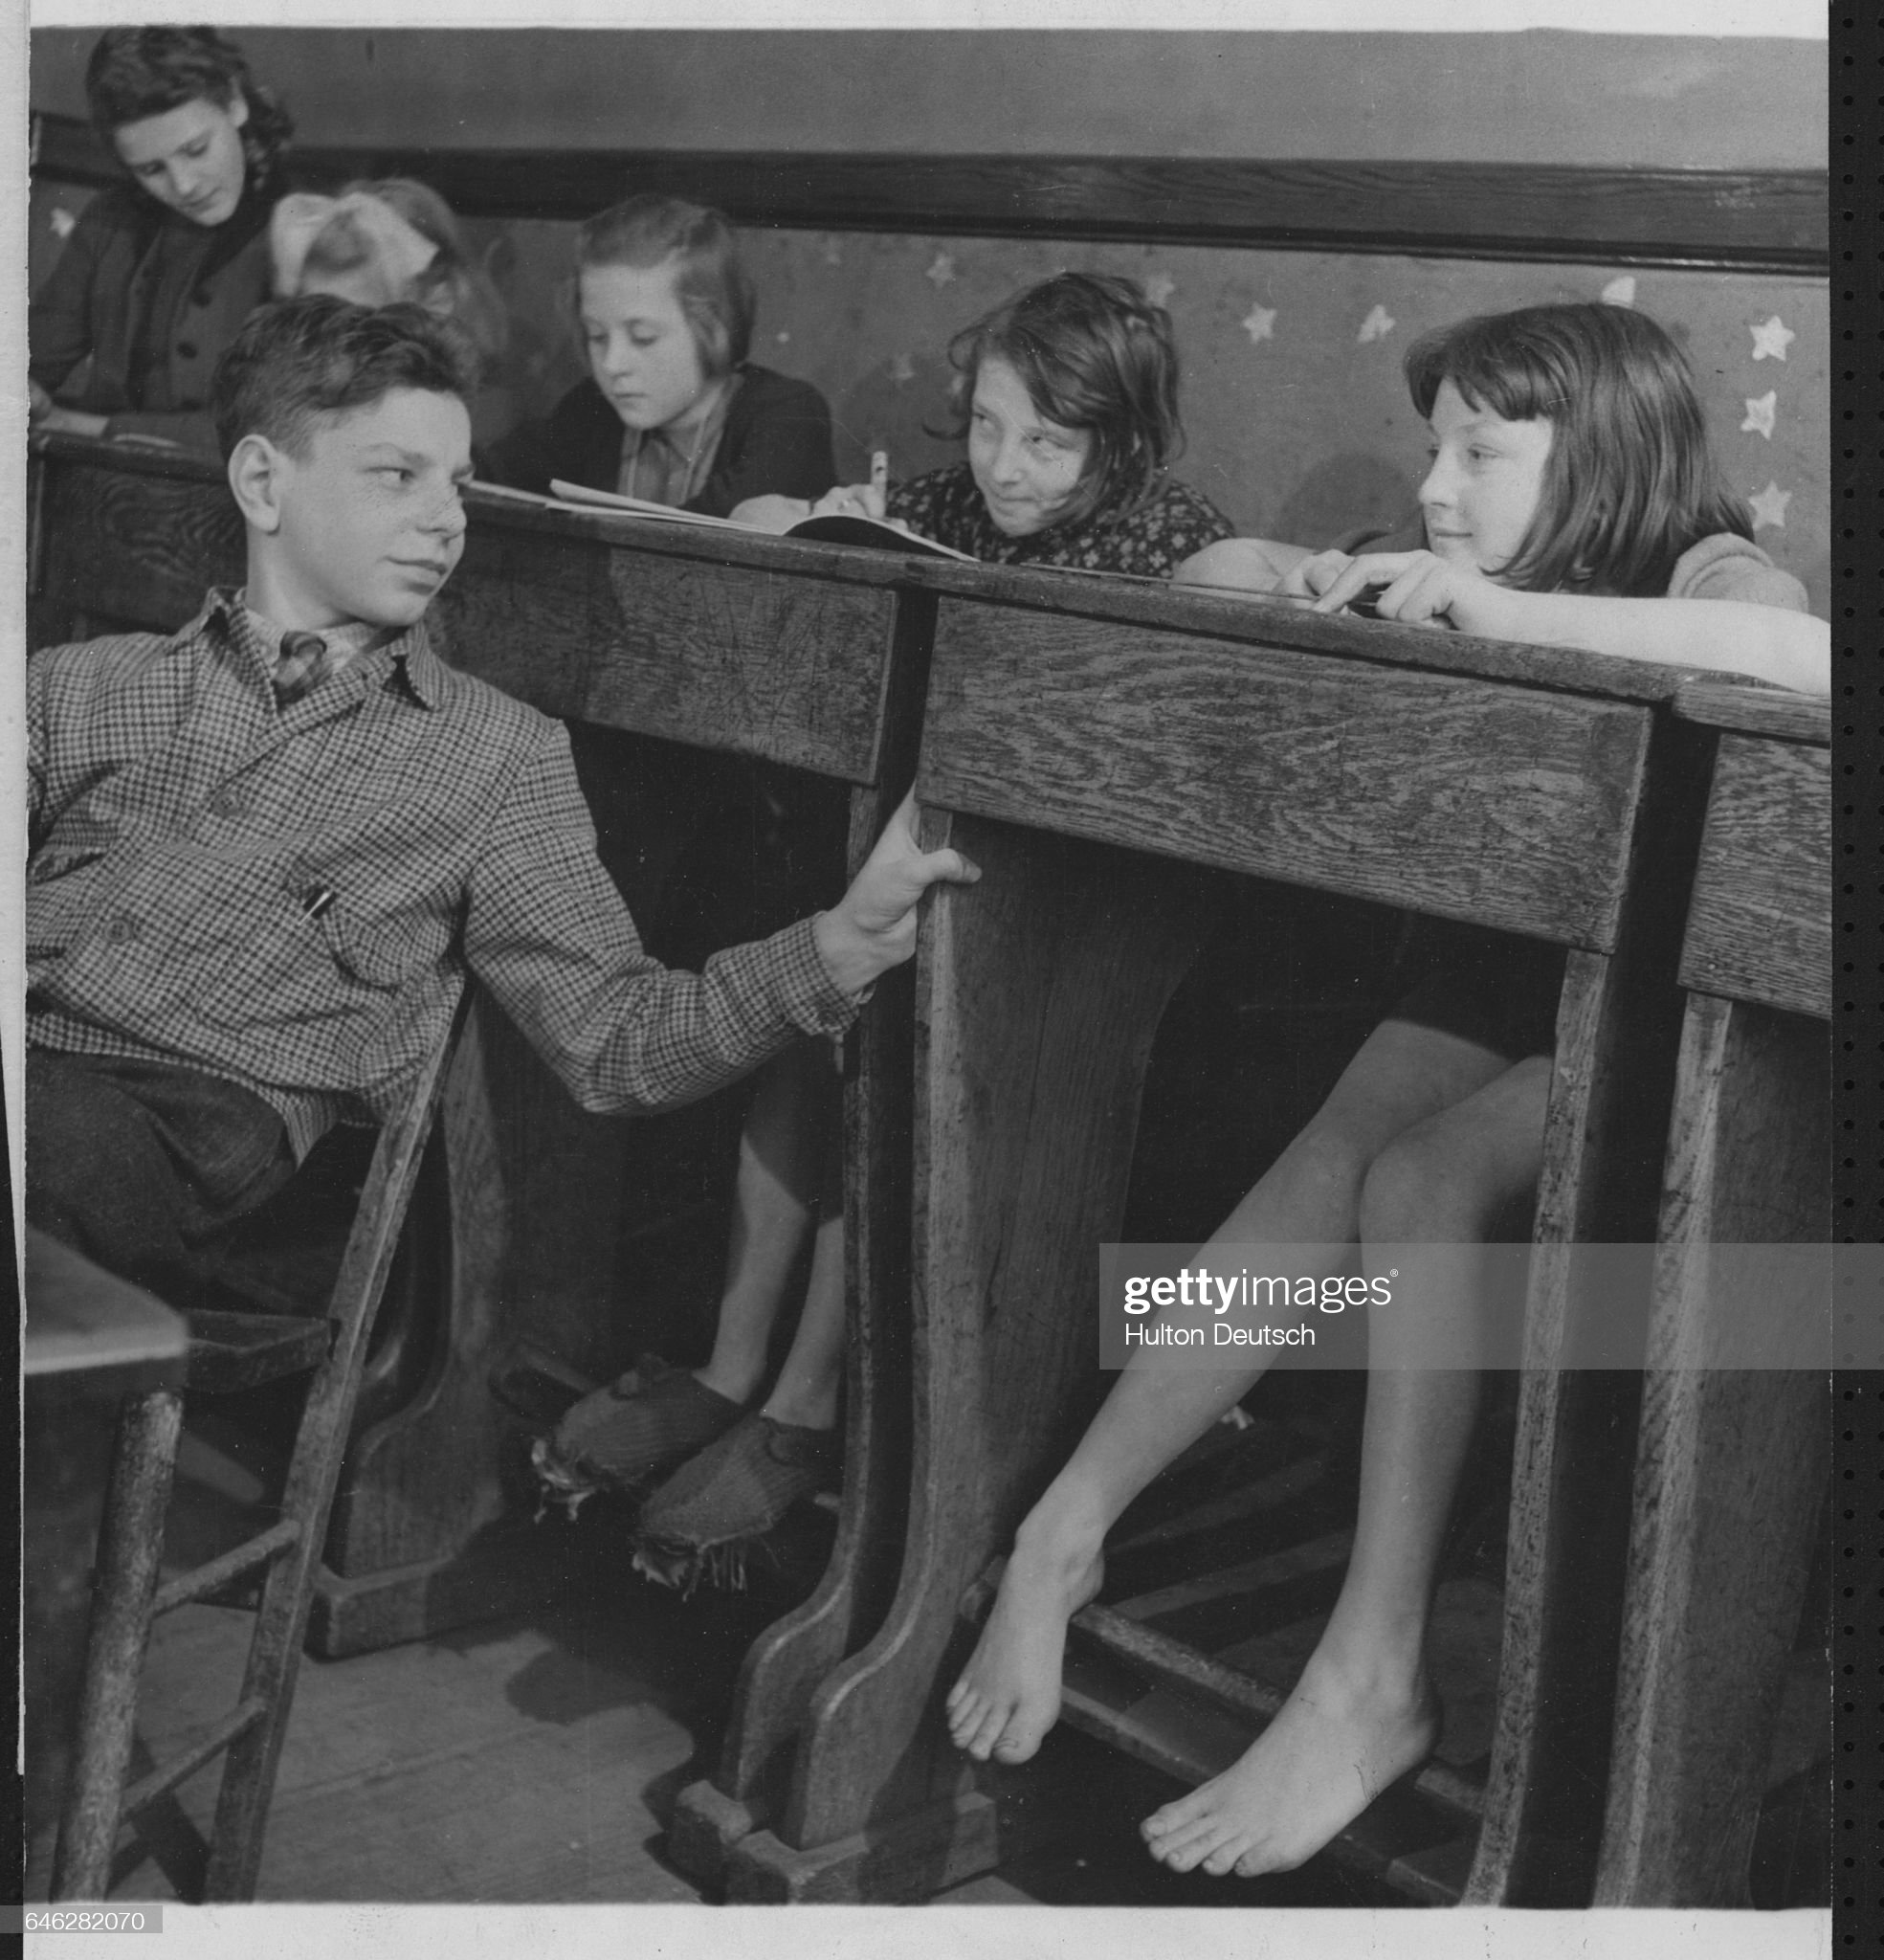 https://media.gettyimages.com/photos/fred-haslam-turns-round-to-speak-to-other-students-norma-richardson-picture-id646282070?s=2048x2048